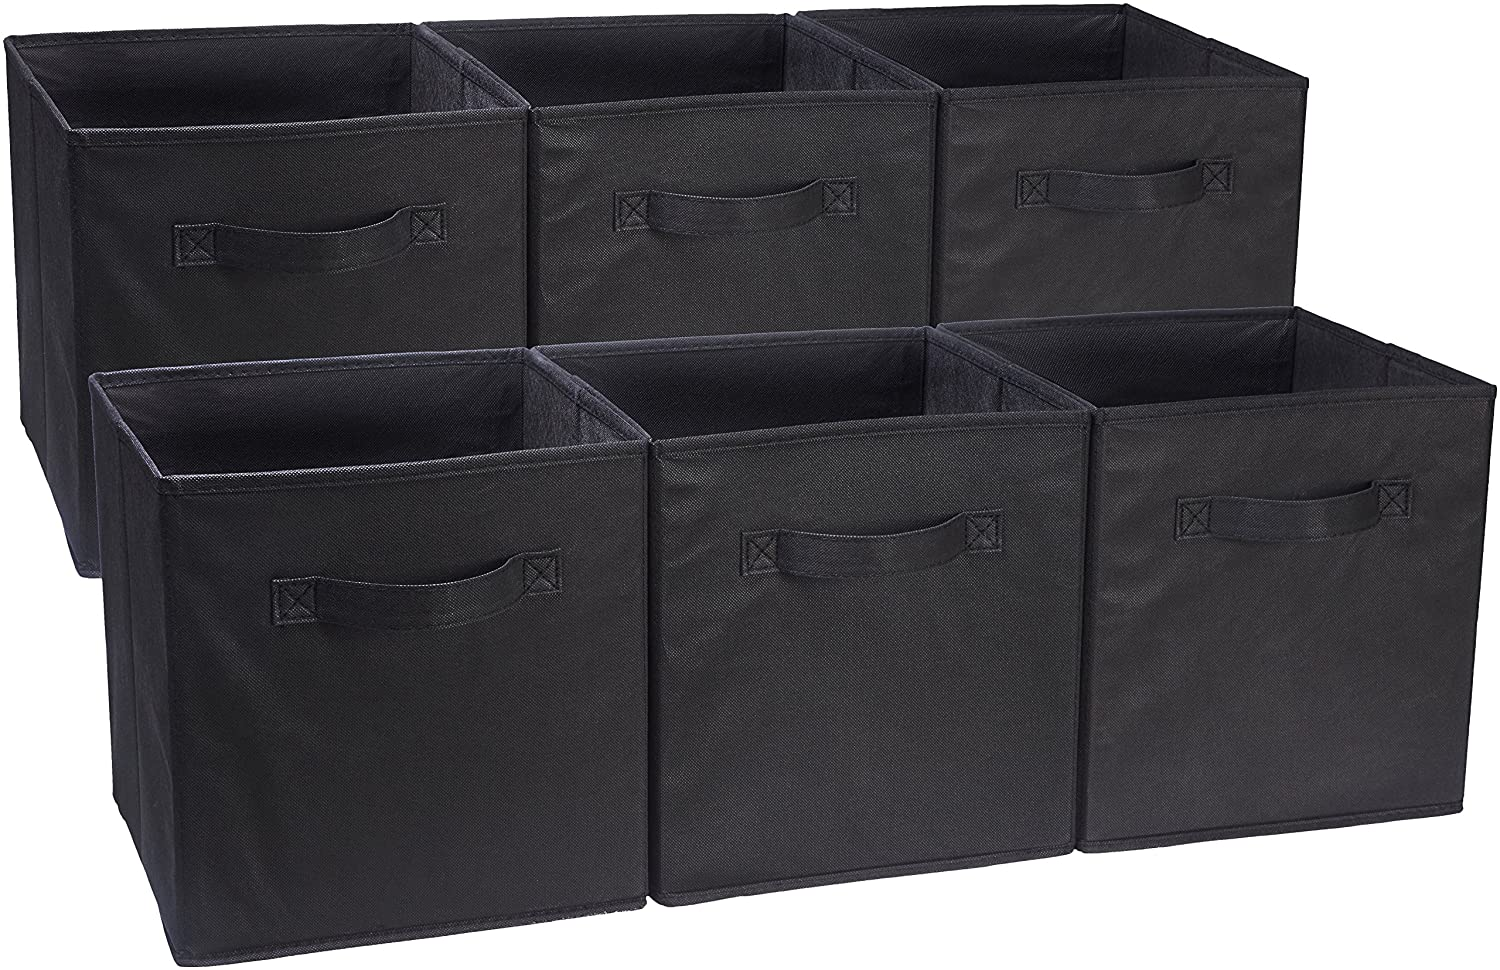 AmazonBasics Foldable Storage Cubes - 6-Pack, Black